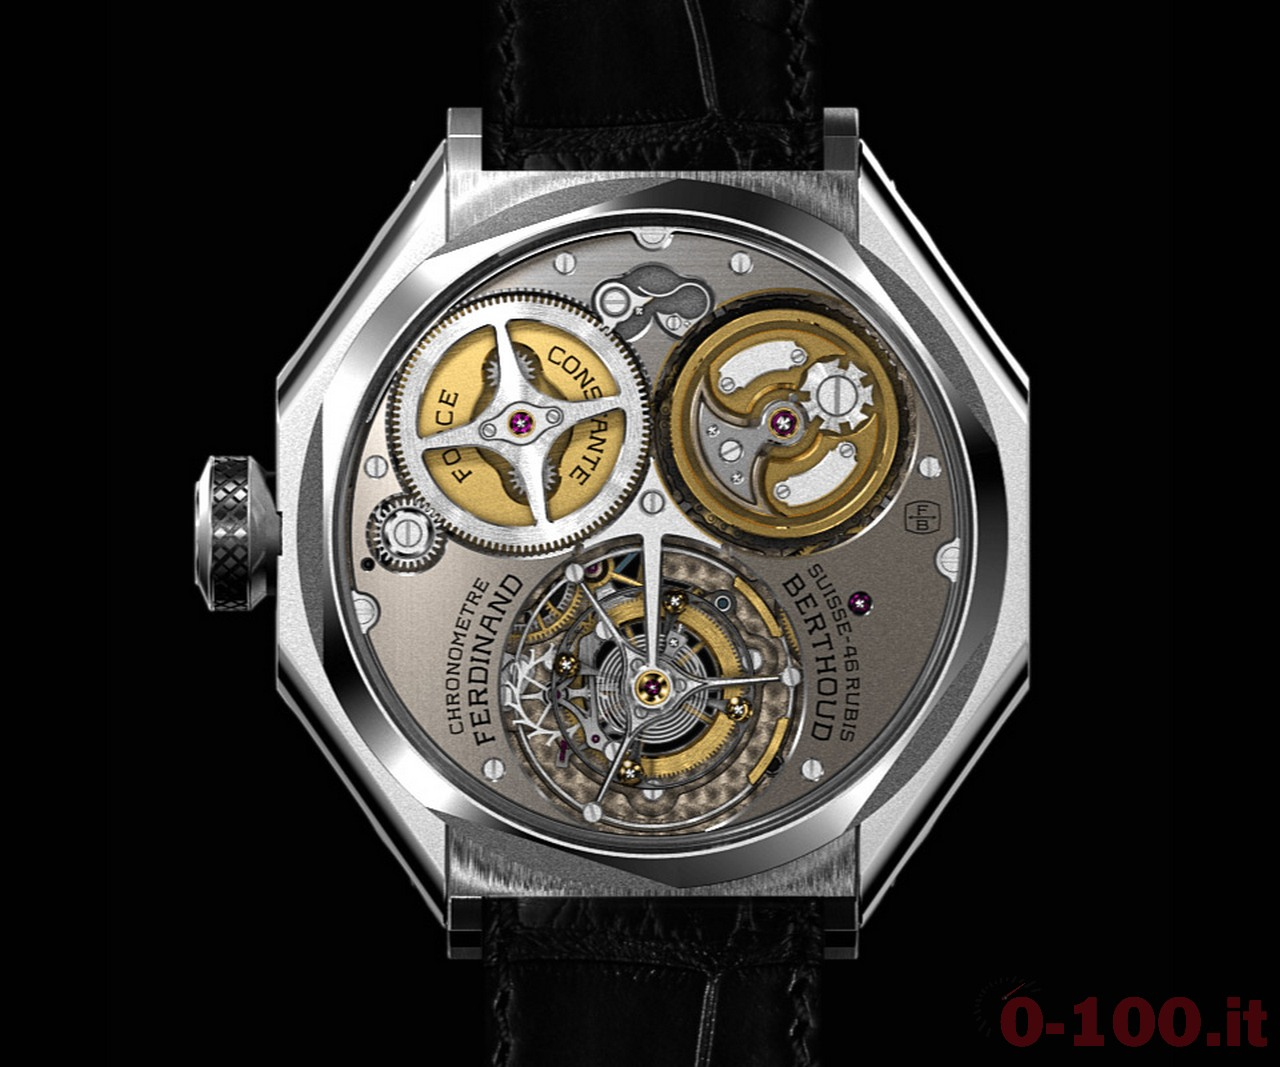 chronometrie-ferdinand-berthoud-fb1-limited-edition-prezzo-price_0-1004